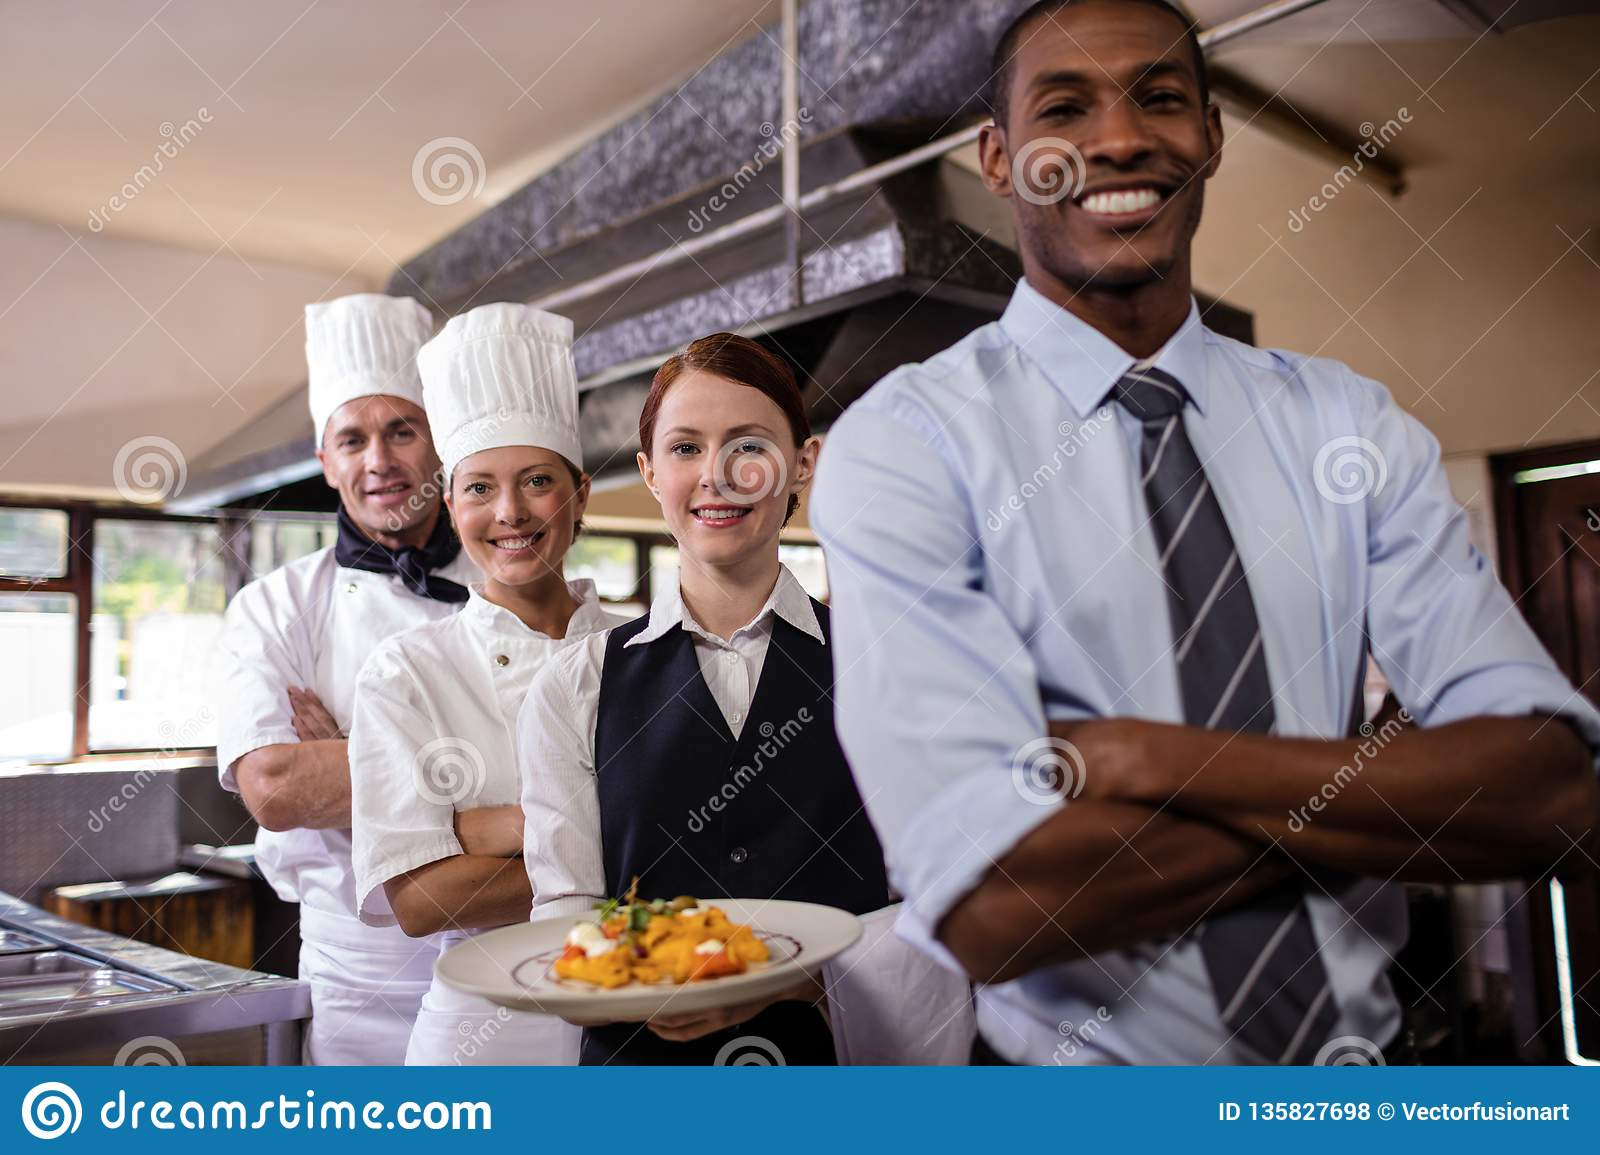 Group of hotel staffs standing with armas crossed in kitchen